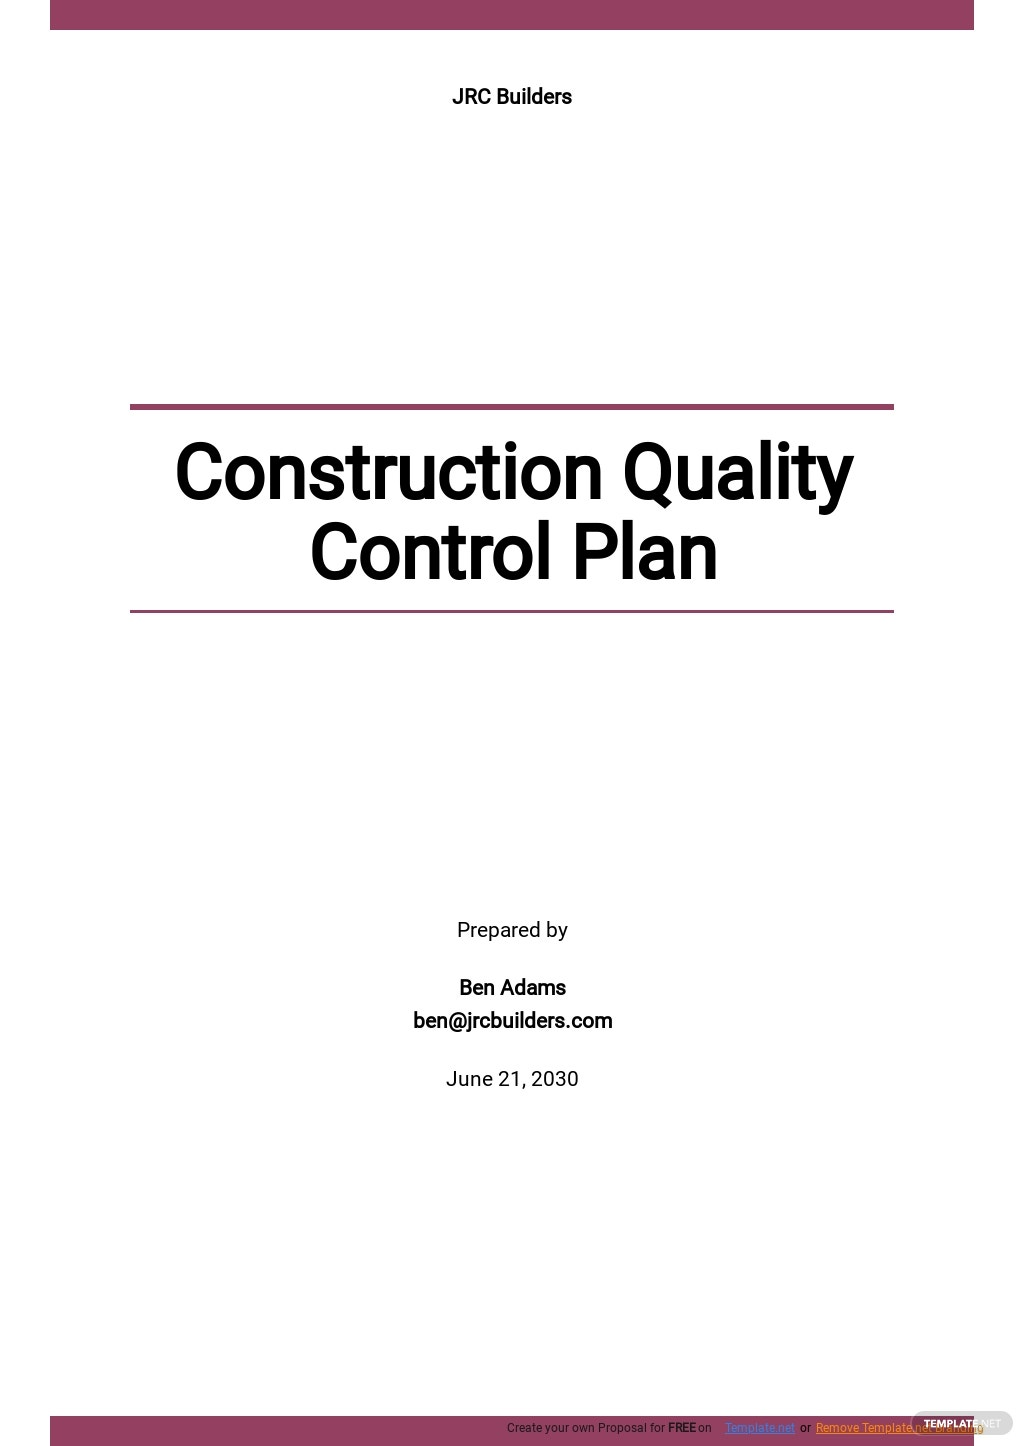 Construction Quality Control Plan Template